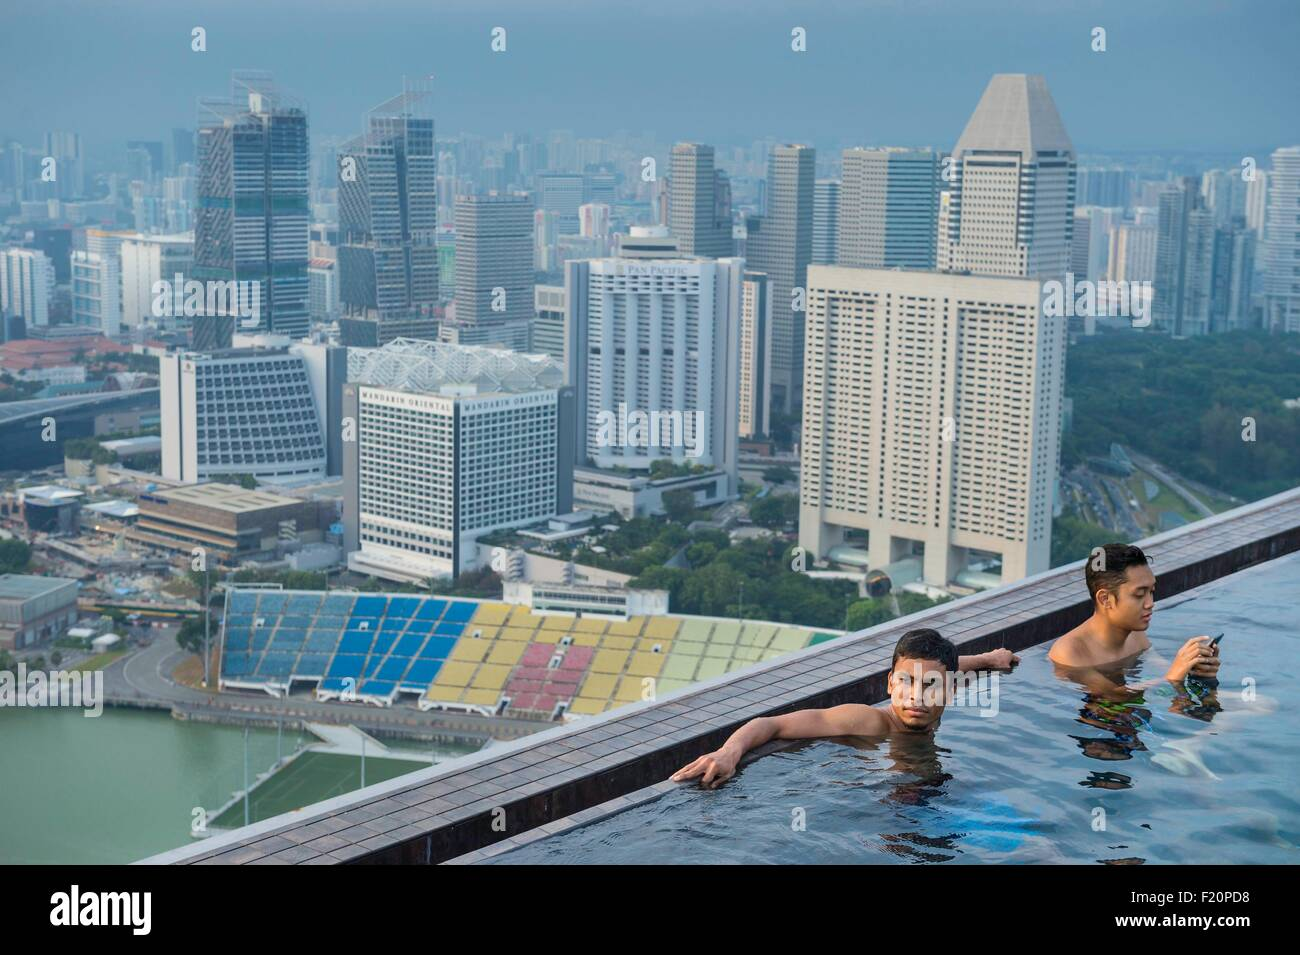 Marina bay sands infinity pool singapore - Singapore Marina Bay Swimming Pool On The Rooftop Of